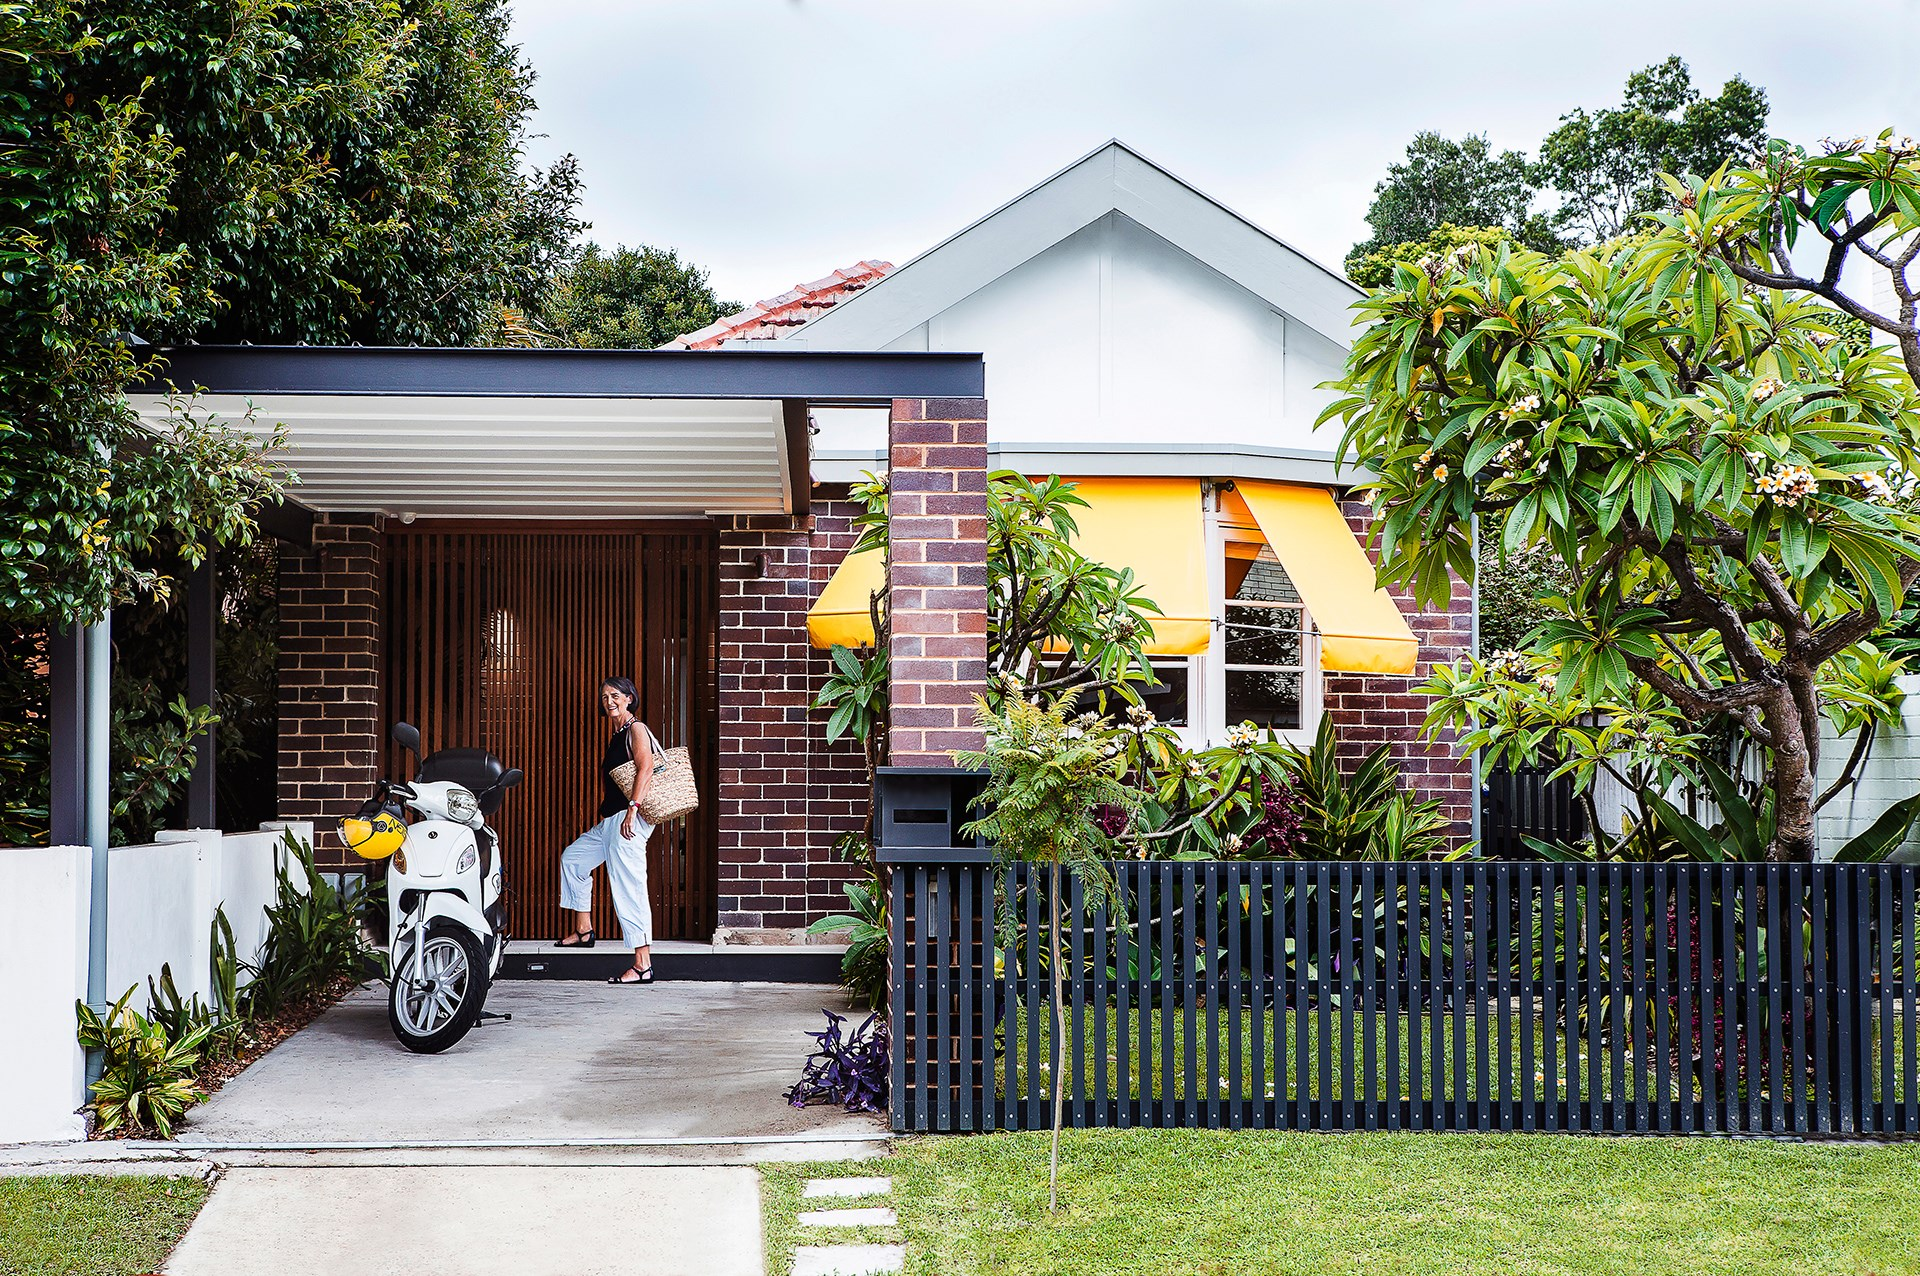 This neat and tidy traditional facade belies the ultra-modern renovation that lies within. Find out more about [eco friendly downsizing exercise](http://www.homestolove.com.au/gallery-dianne-and-davids-small-house-design-makes-a-big-impact-1765). Photo: Maree Homer / *Australian House & Garden*